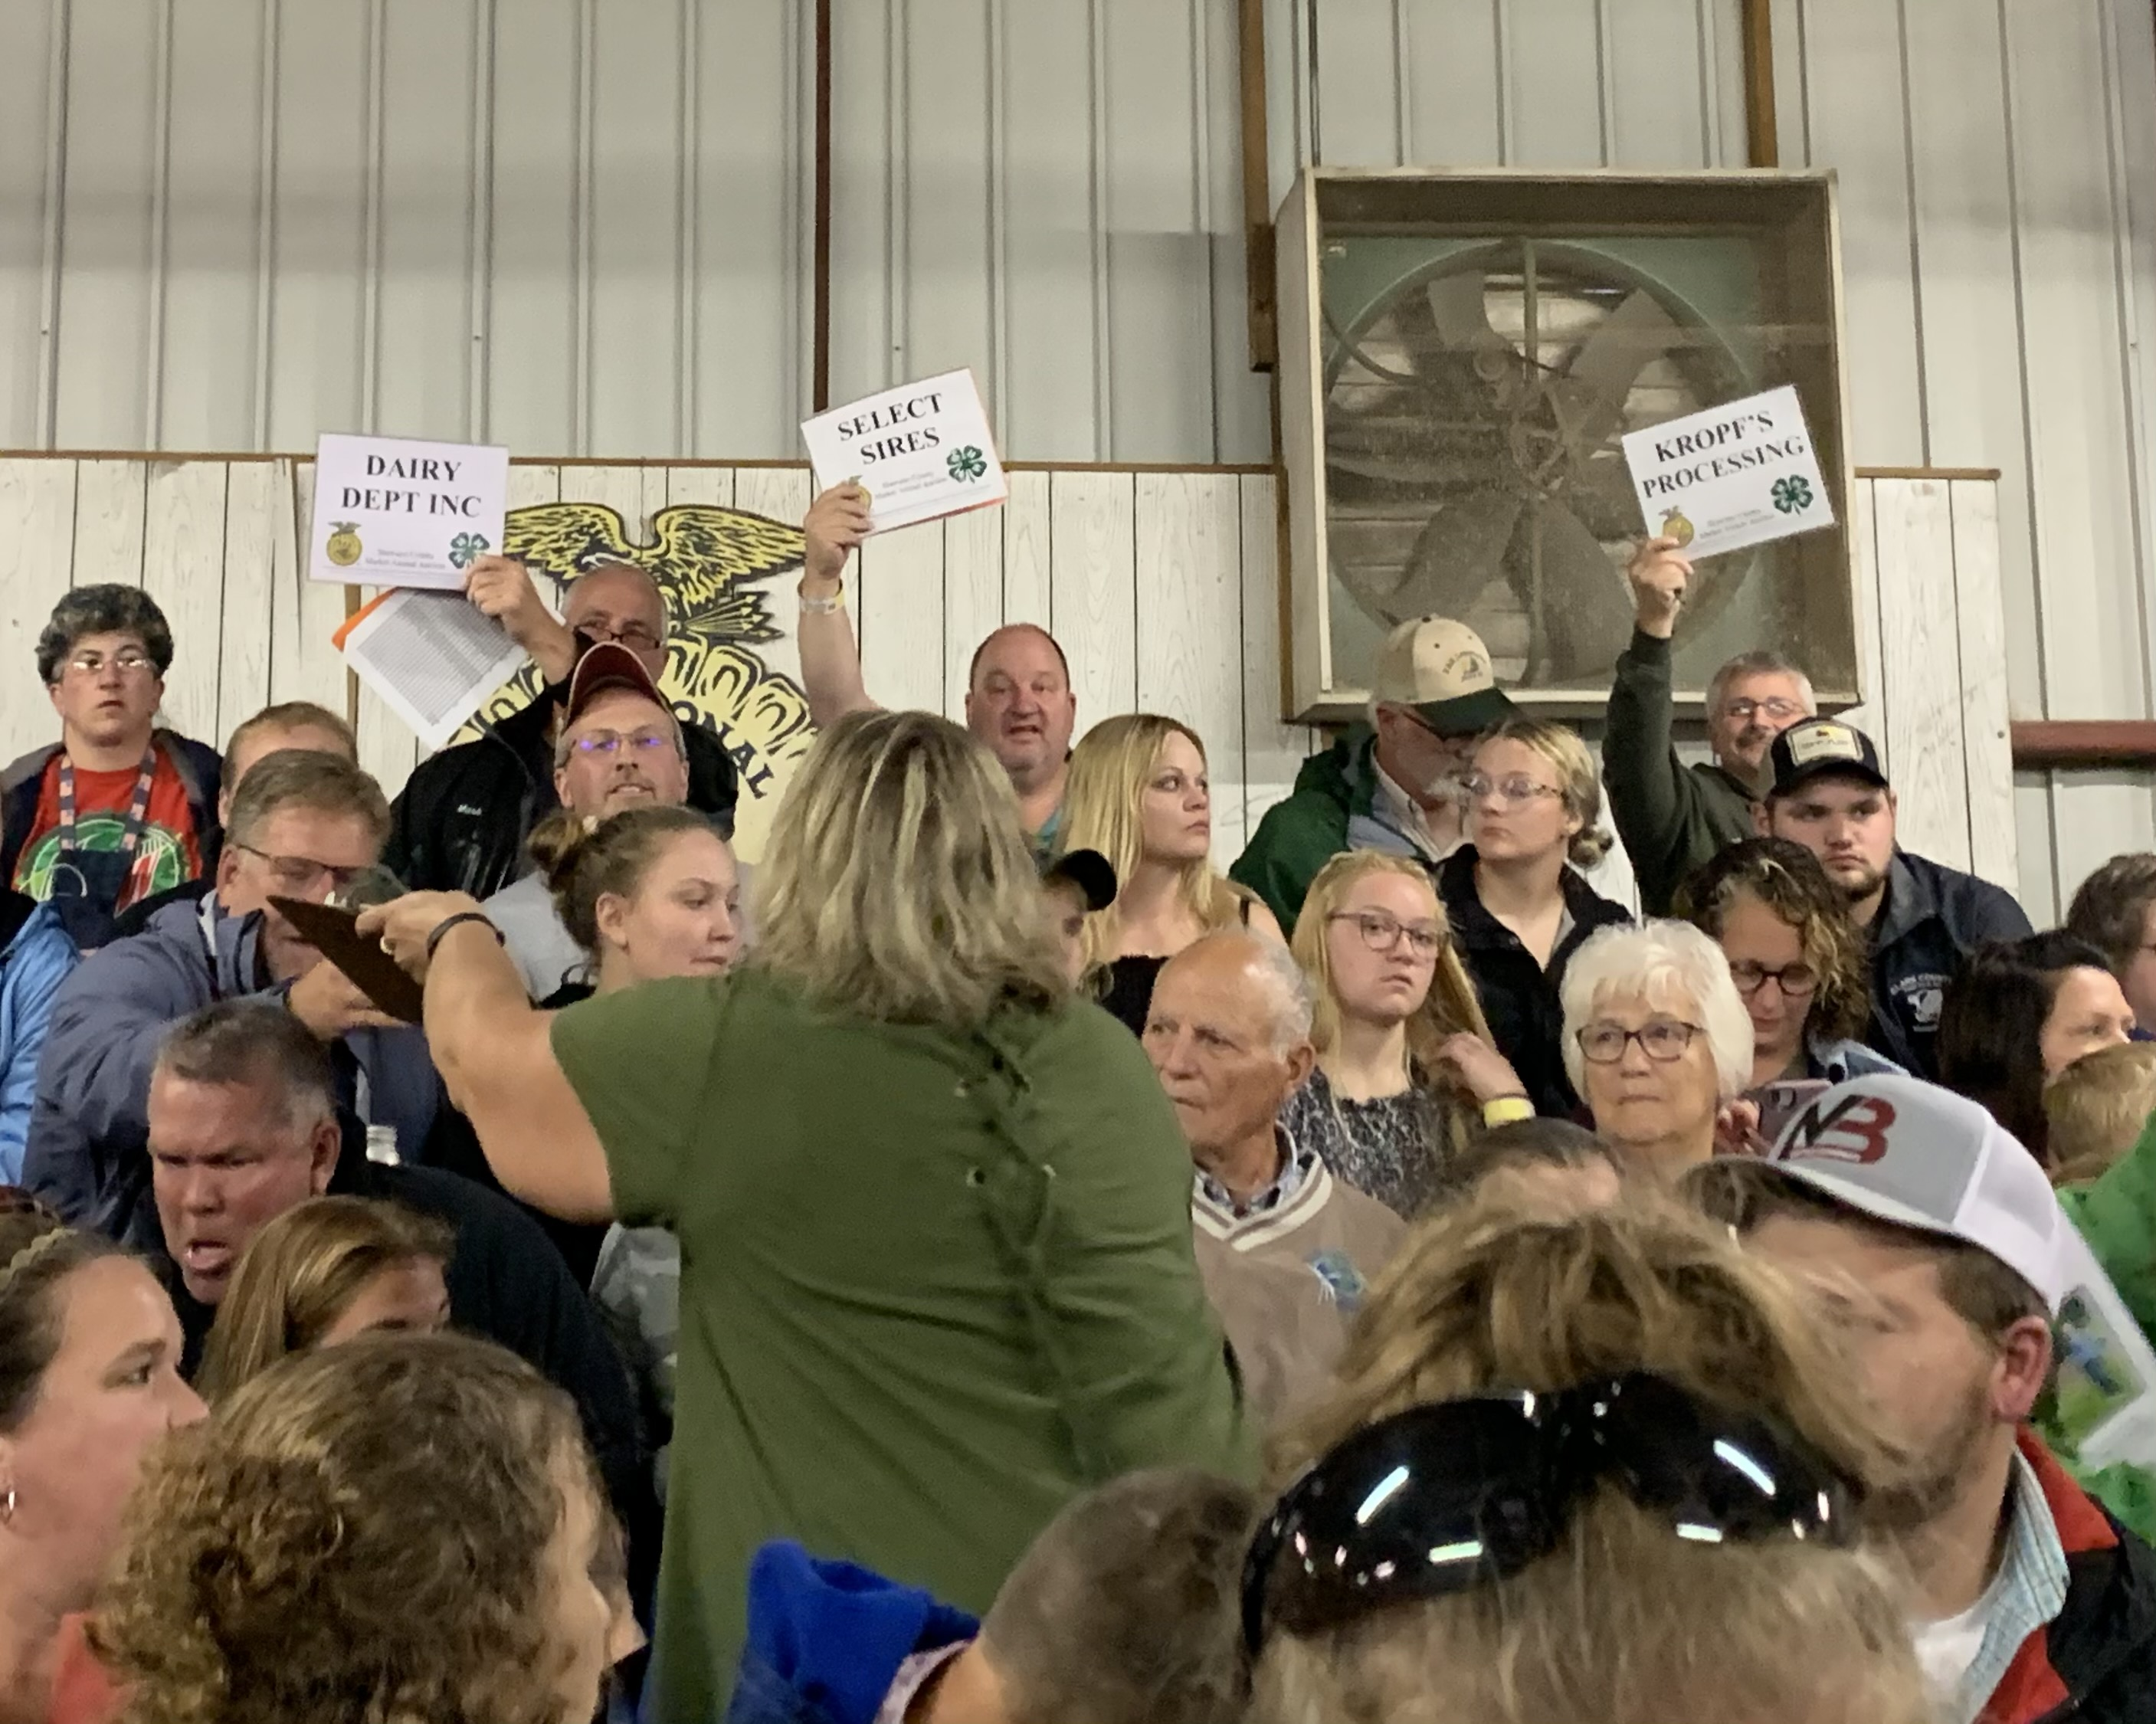 Bids arise from Dairy Department Inc., Select Sires and Kropf's Processing as representatives hope to get the winning bid for the livestock at the Shawano County Fair on Sept. 3.Luke Reimer | NEW Media